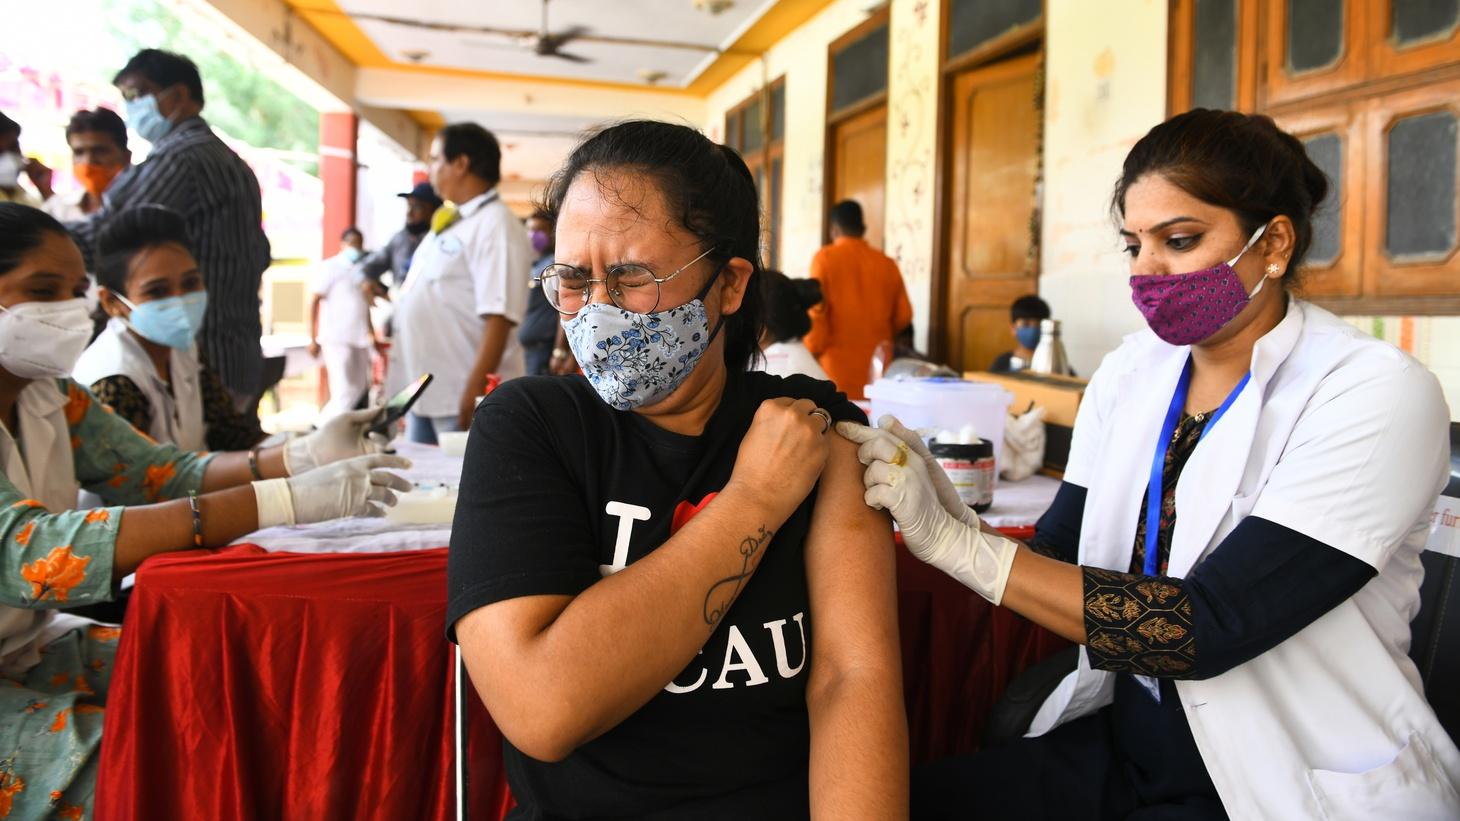 A young woman reacts as she receives a dose of Covishield (COVID-19 vaccine) during a special vaccination drive in Beawar. The first case of the Delta-plus variant of coronavirus in Rajasthan was found in Bikaner, India on June 27, 2021.